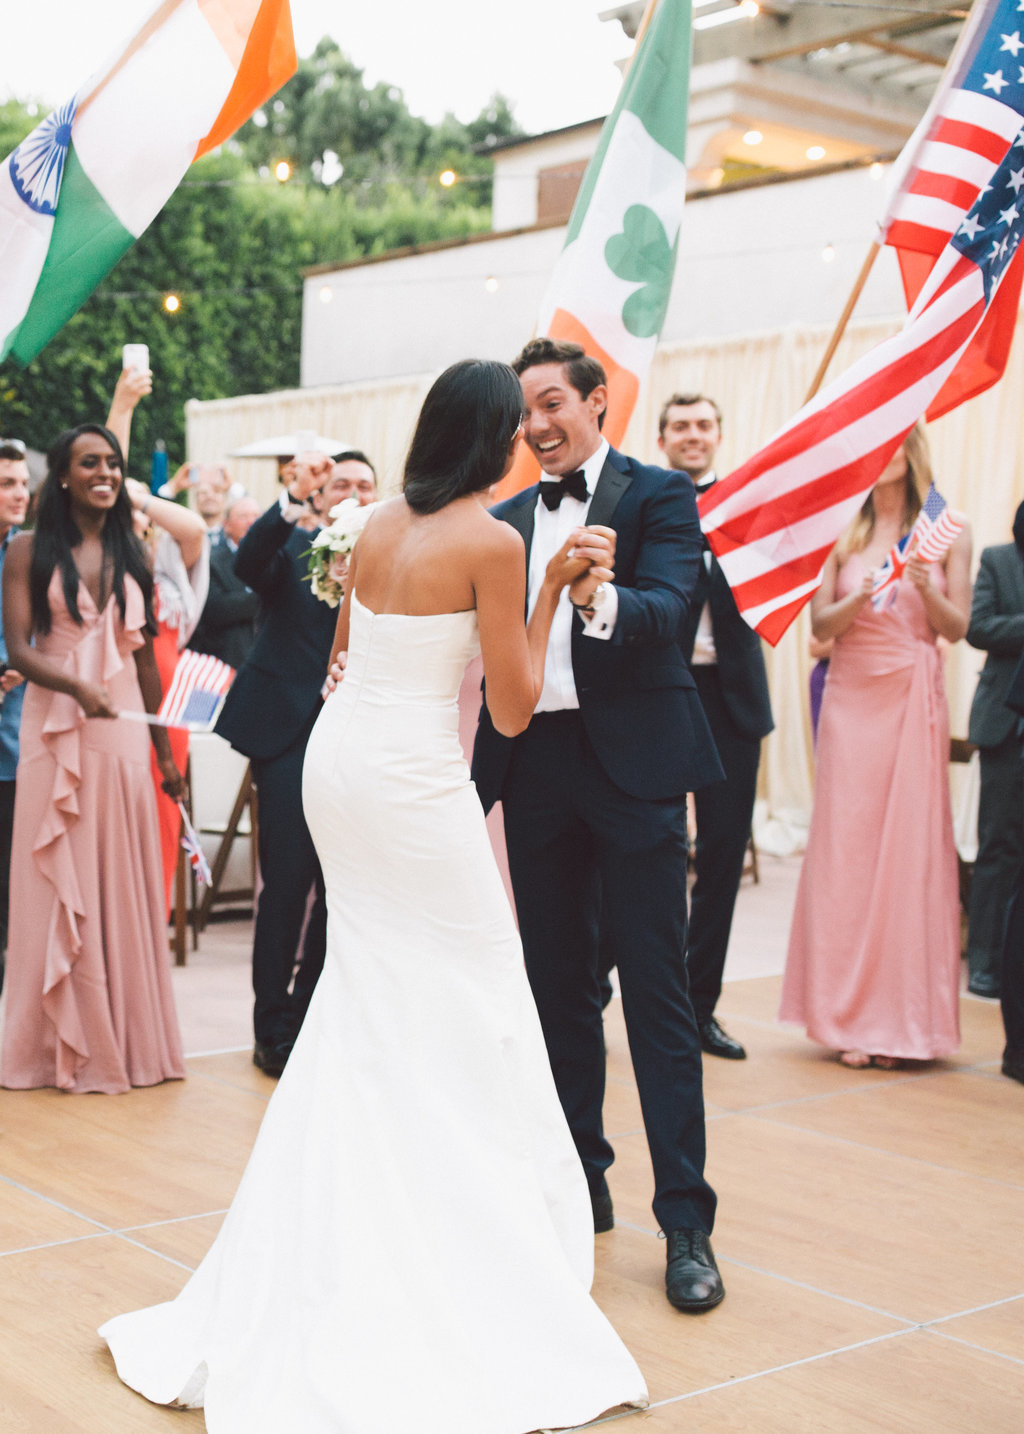 Bride and groom first dance during wedding reception with wedding party holding nationality flags at Butterfly Lane Estate in Montecito